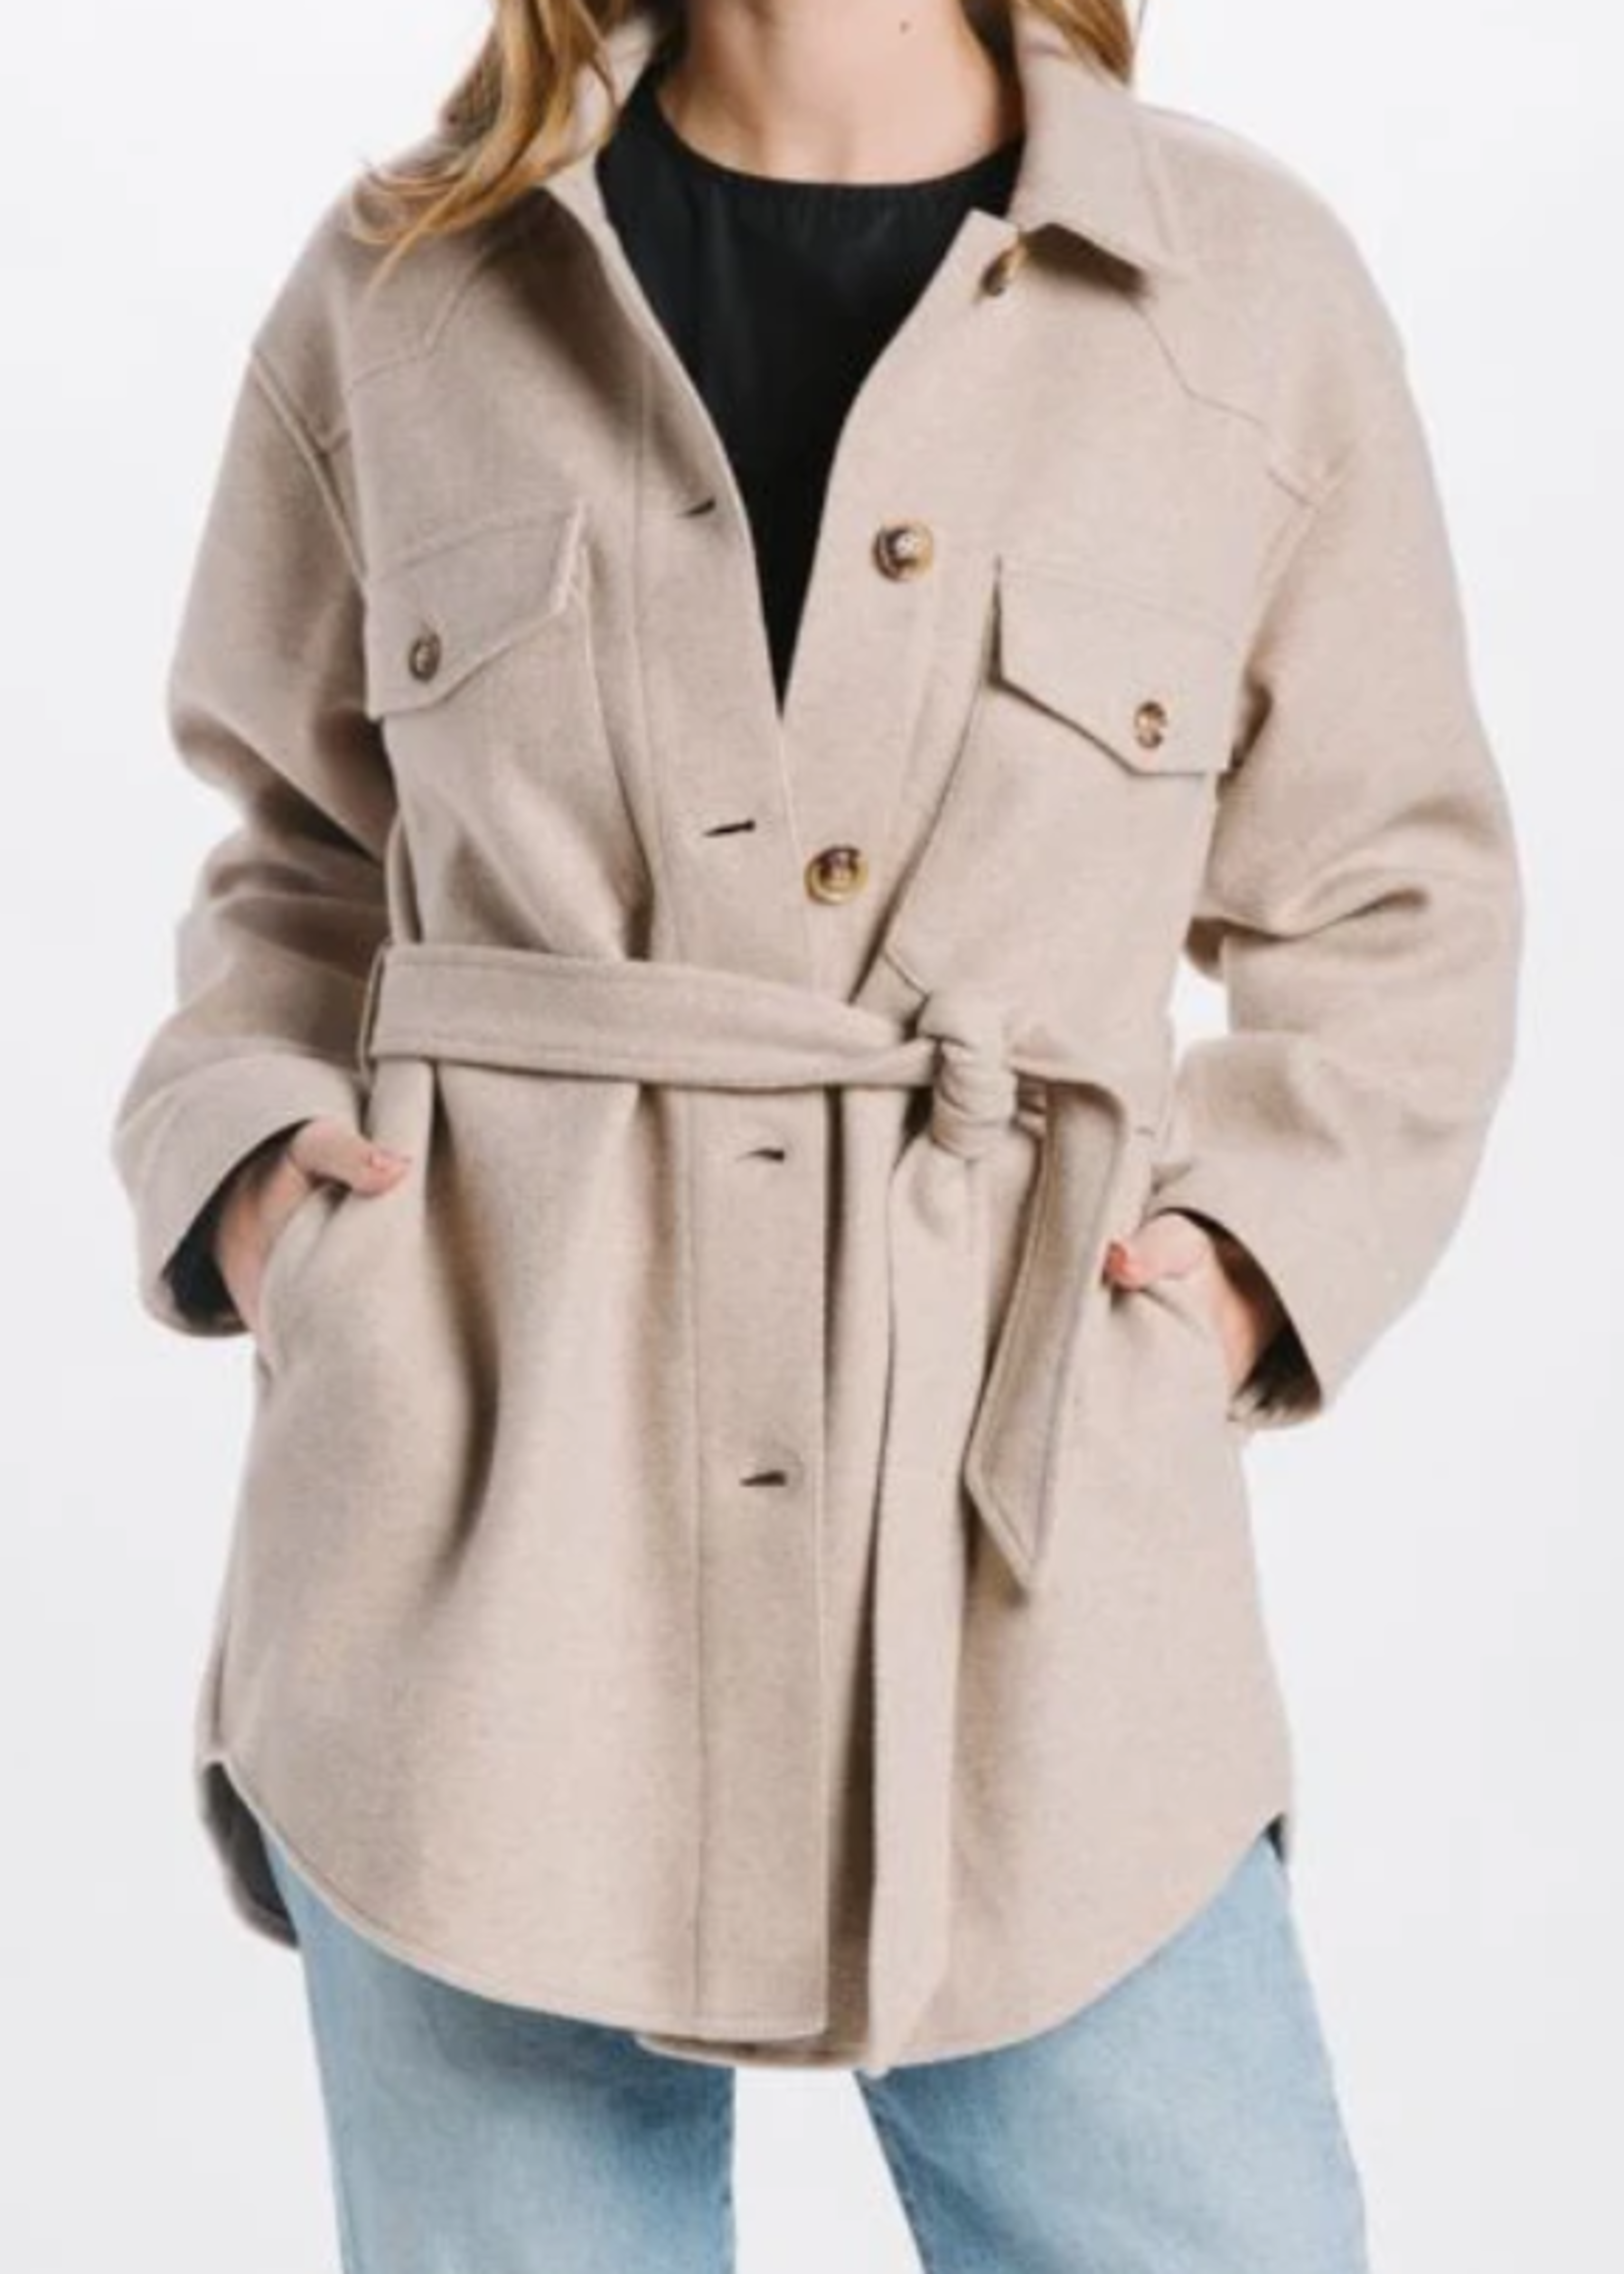 Elitaire Boutique Button Up Jacket in Natural